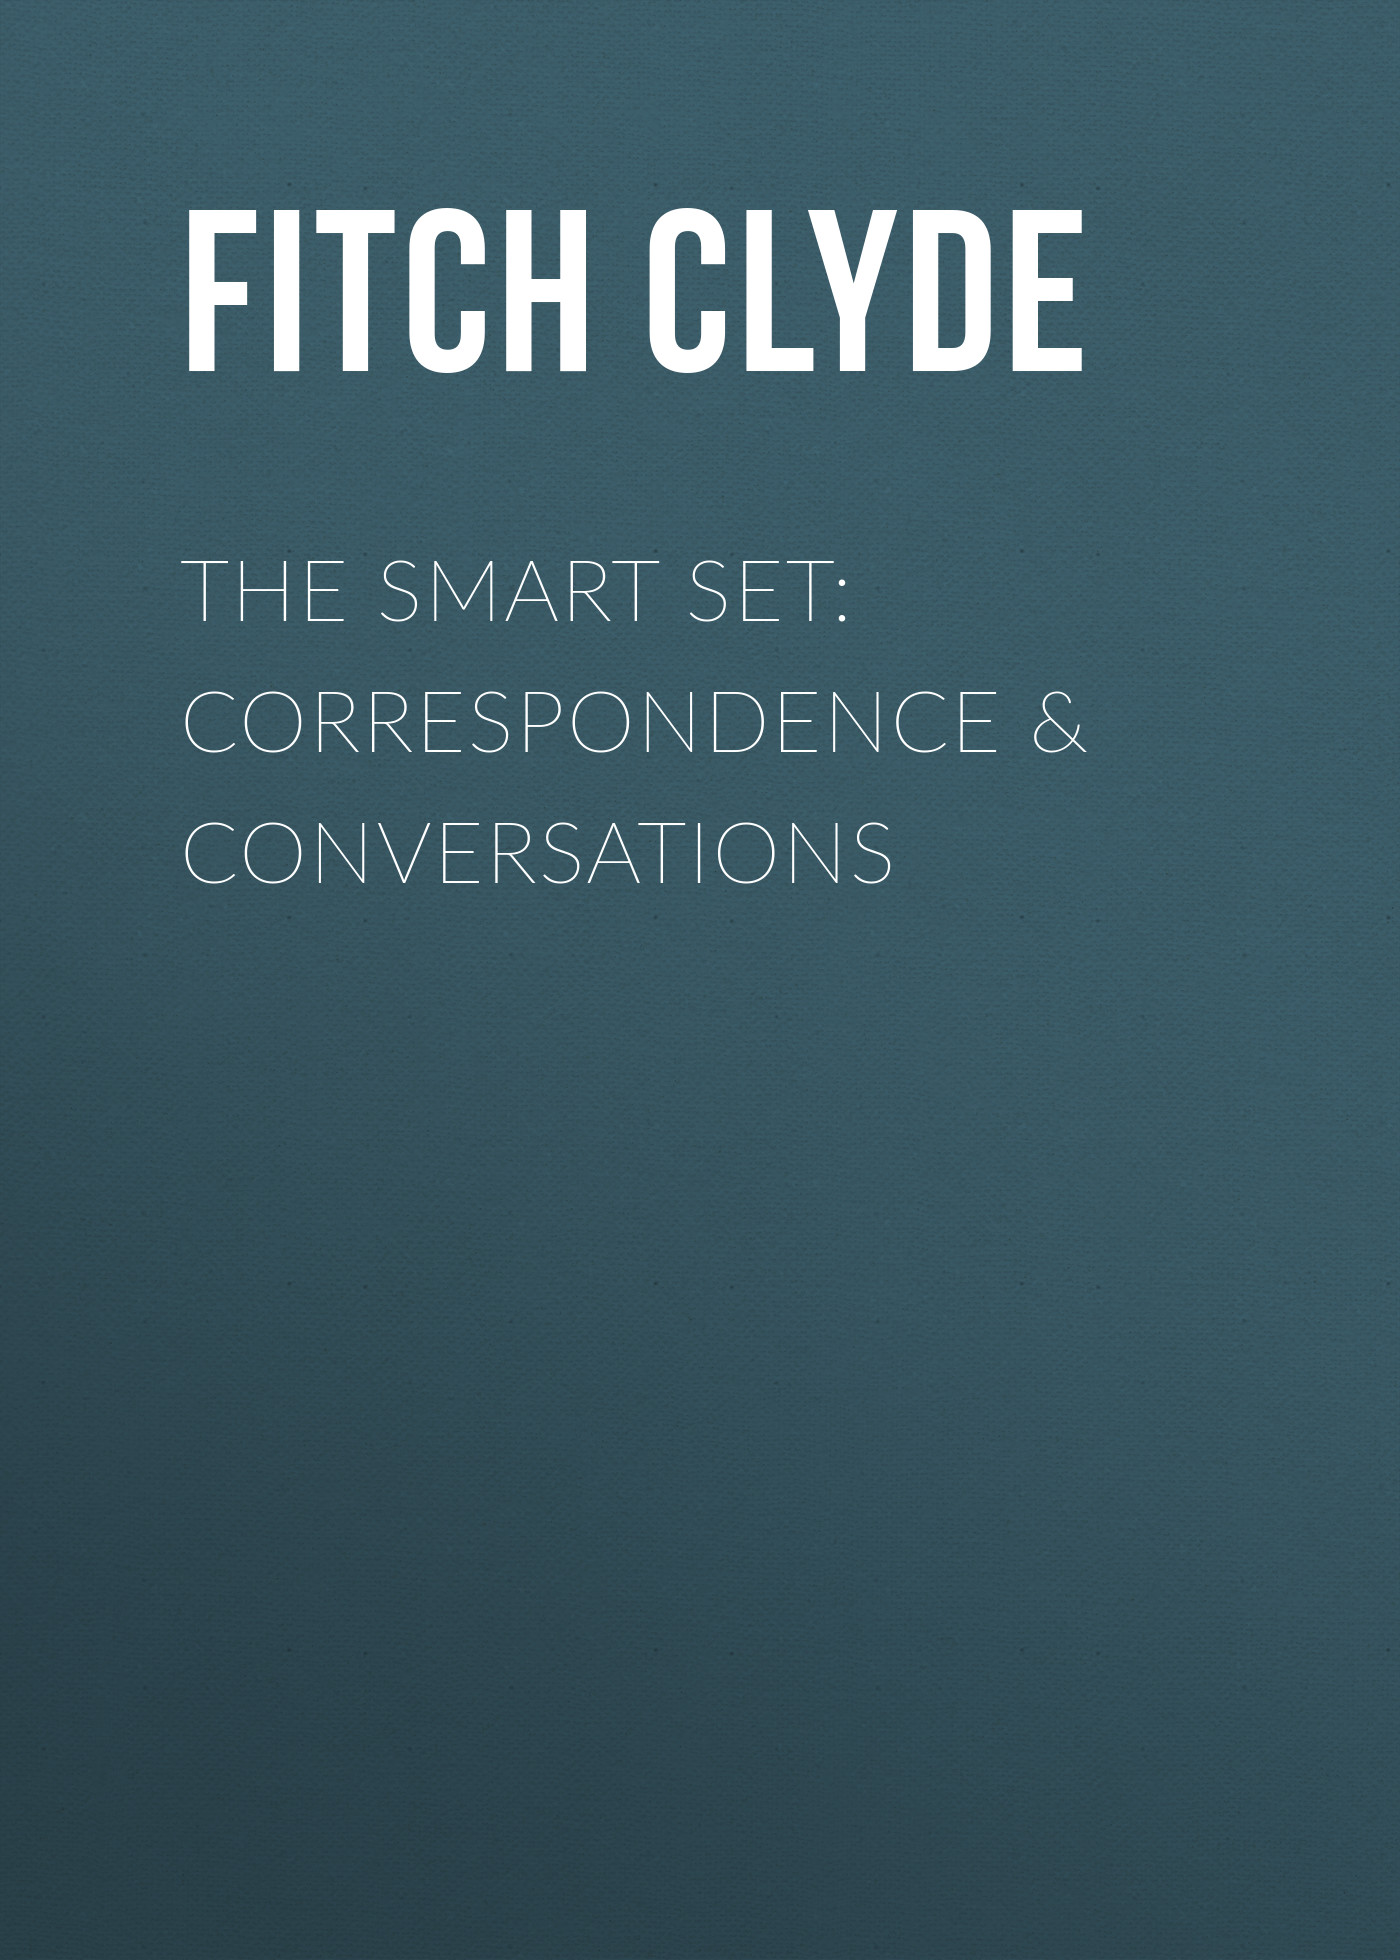 купить Fitch Clyde The Smart Set: Correspondence & Conversations по цене 0 рублей